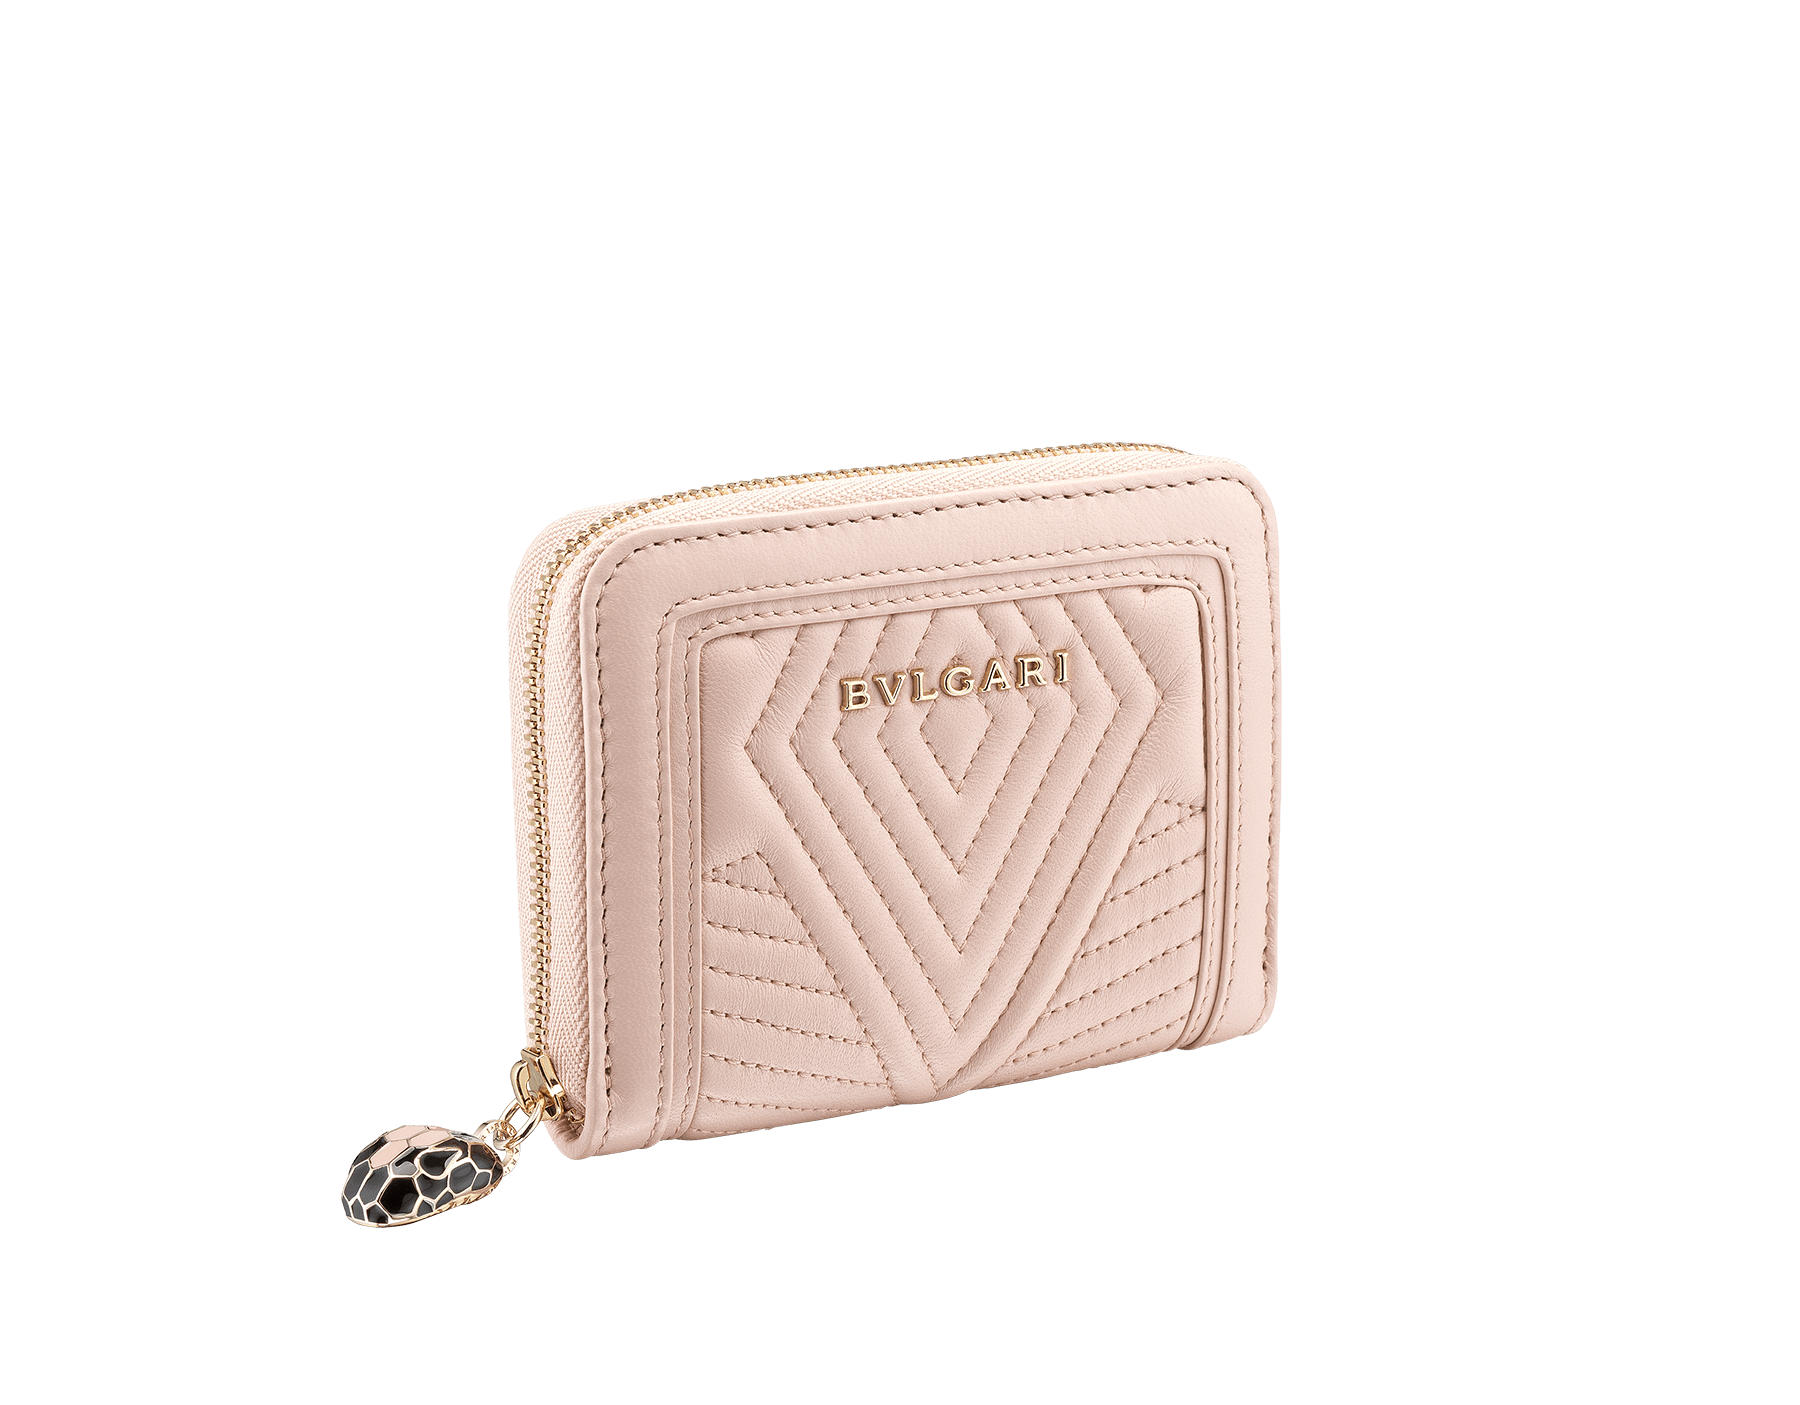 Serpenti Diamond Blast mini zipped wallet in crystal rose quilted nappa leather. Iconic snakehead zip puller in black and white enamel, with black enamel eyes 287589 image 1